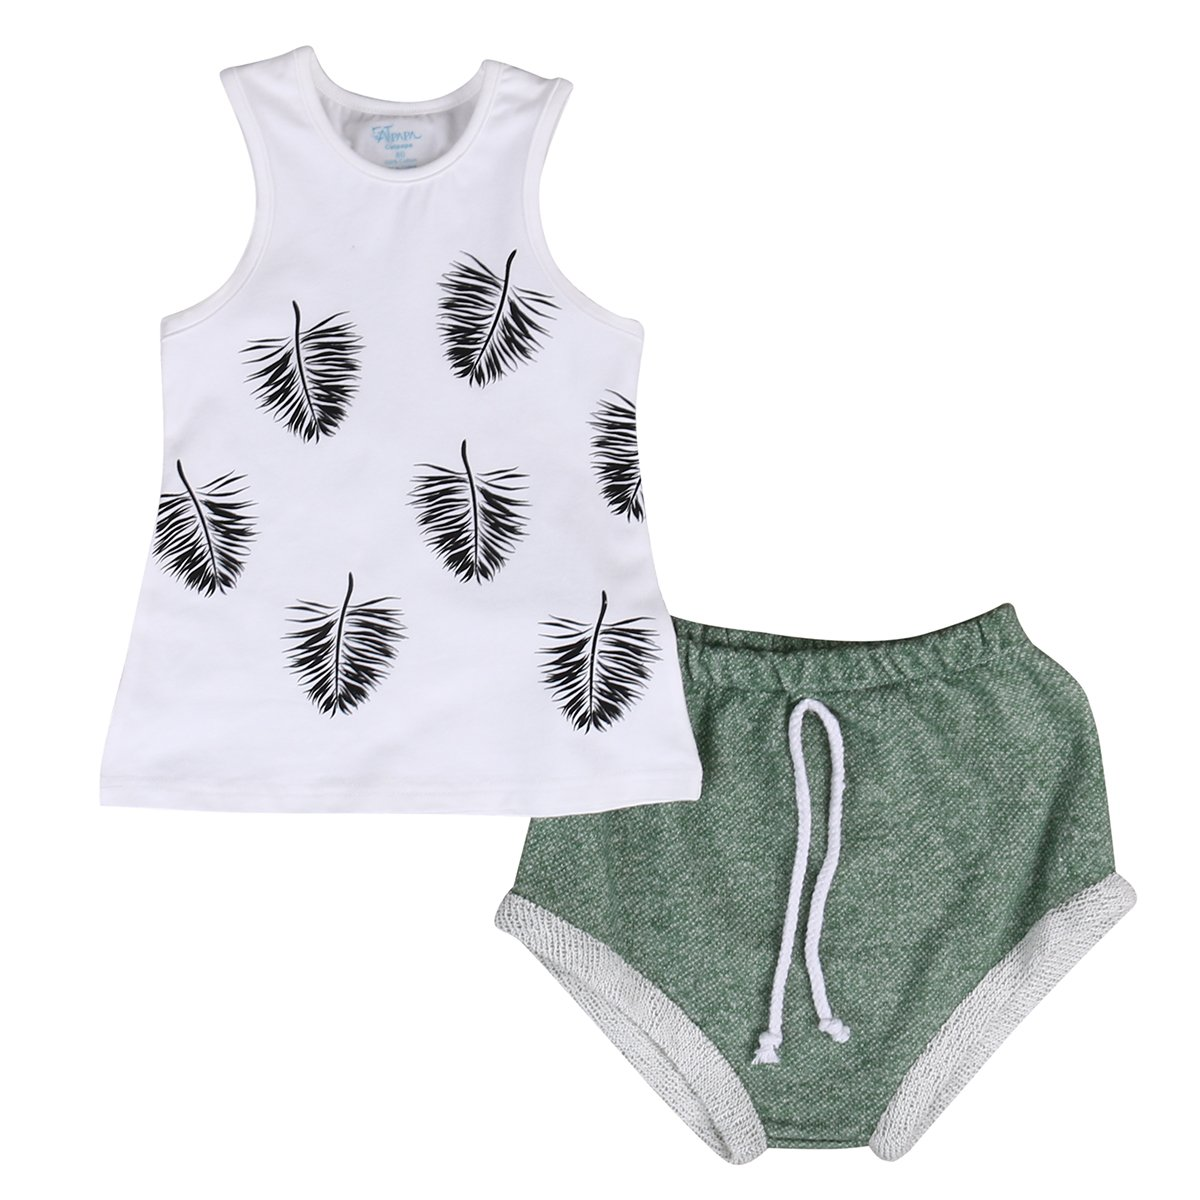 Short Pants 2pcs Outfit Set TheFound Newborn Baby Clothing Sleeveless Printed Tank Tops T-shirt